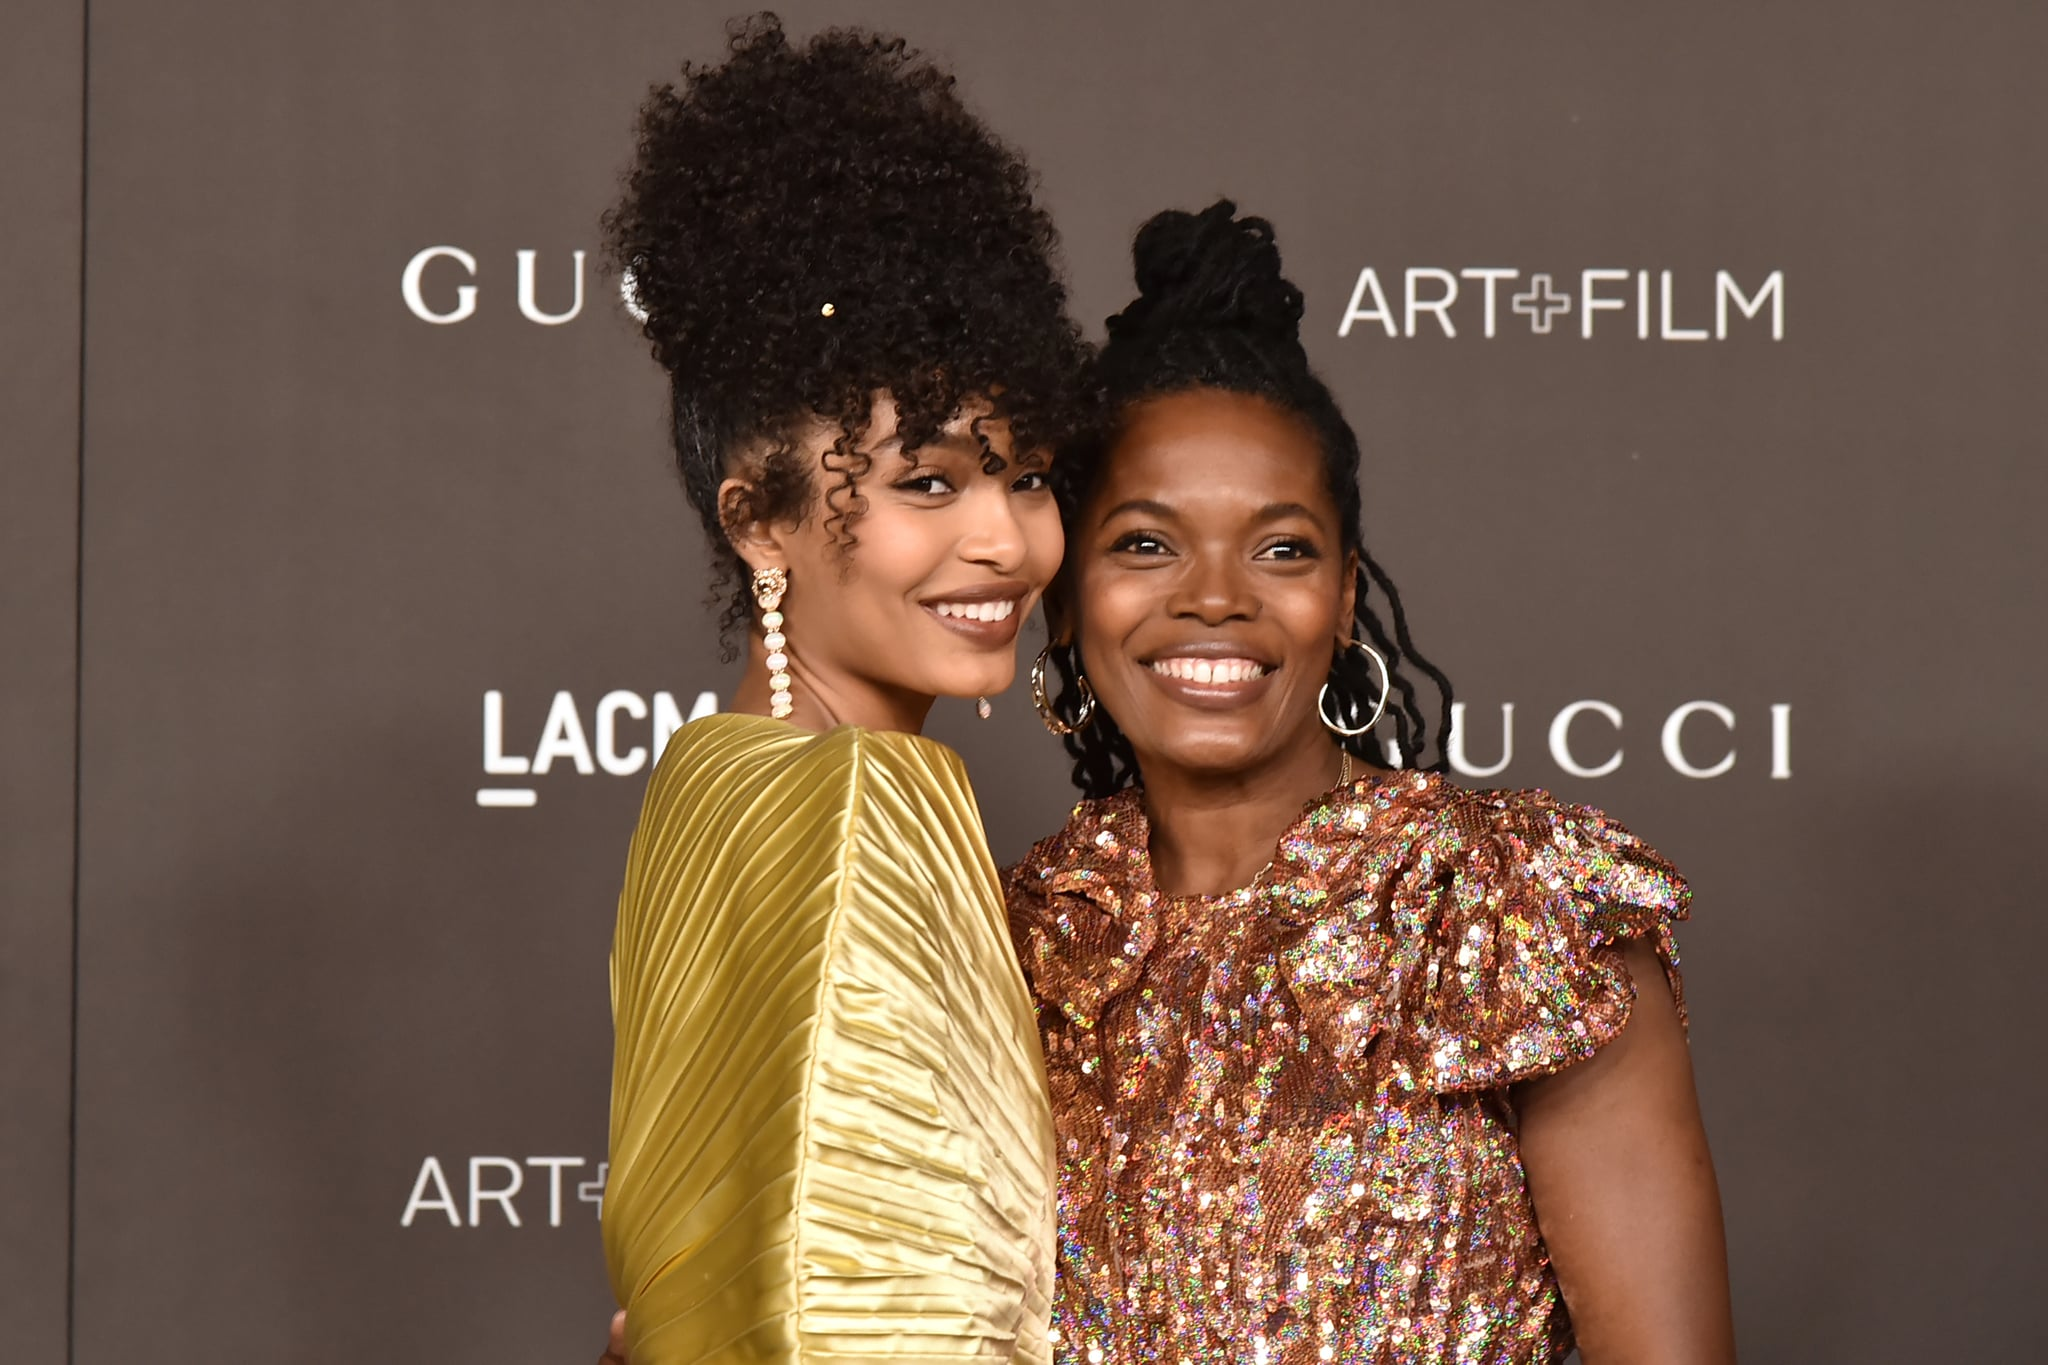 LOS ANGELES, CALIFORNIA - NOVEMBER 02: Yara Shahidi and Keri Shahidi attend the 2019 LACMA Art + Film Gala  at LACMA on November 02, 2019 in Los Angeles, California. (Photo by David Crotty/Patrick McMullan via Getty Images)